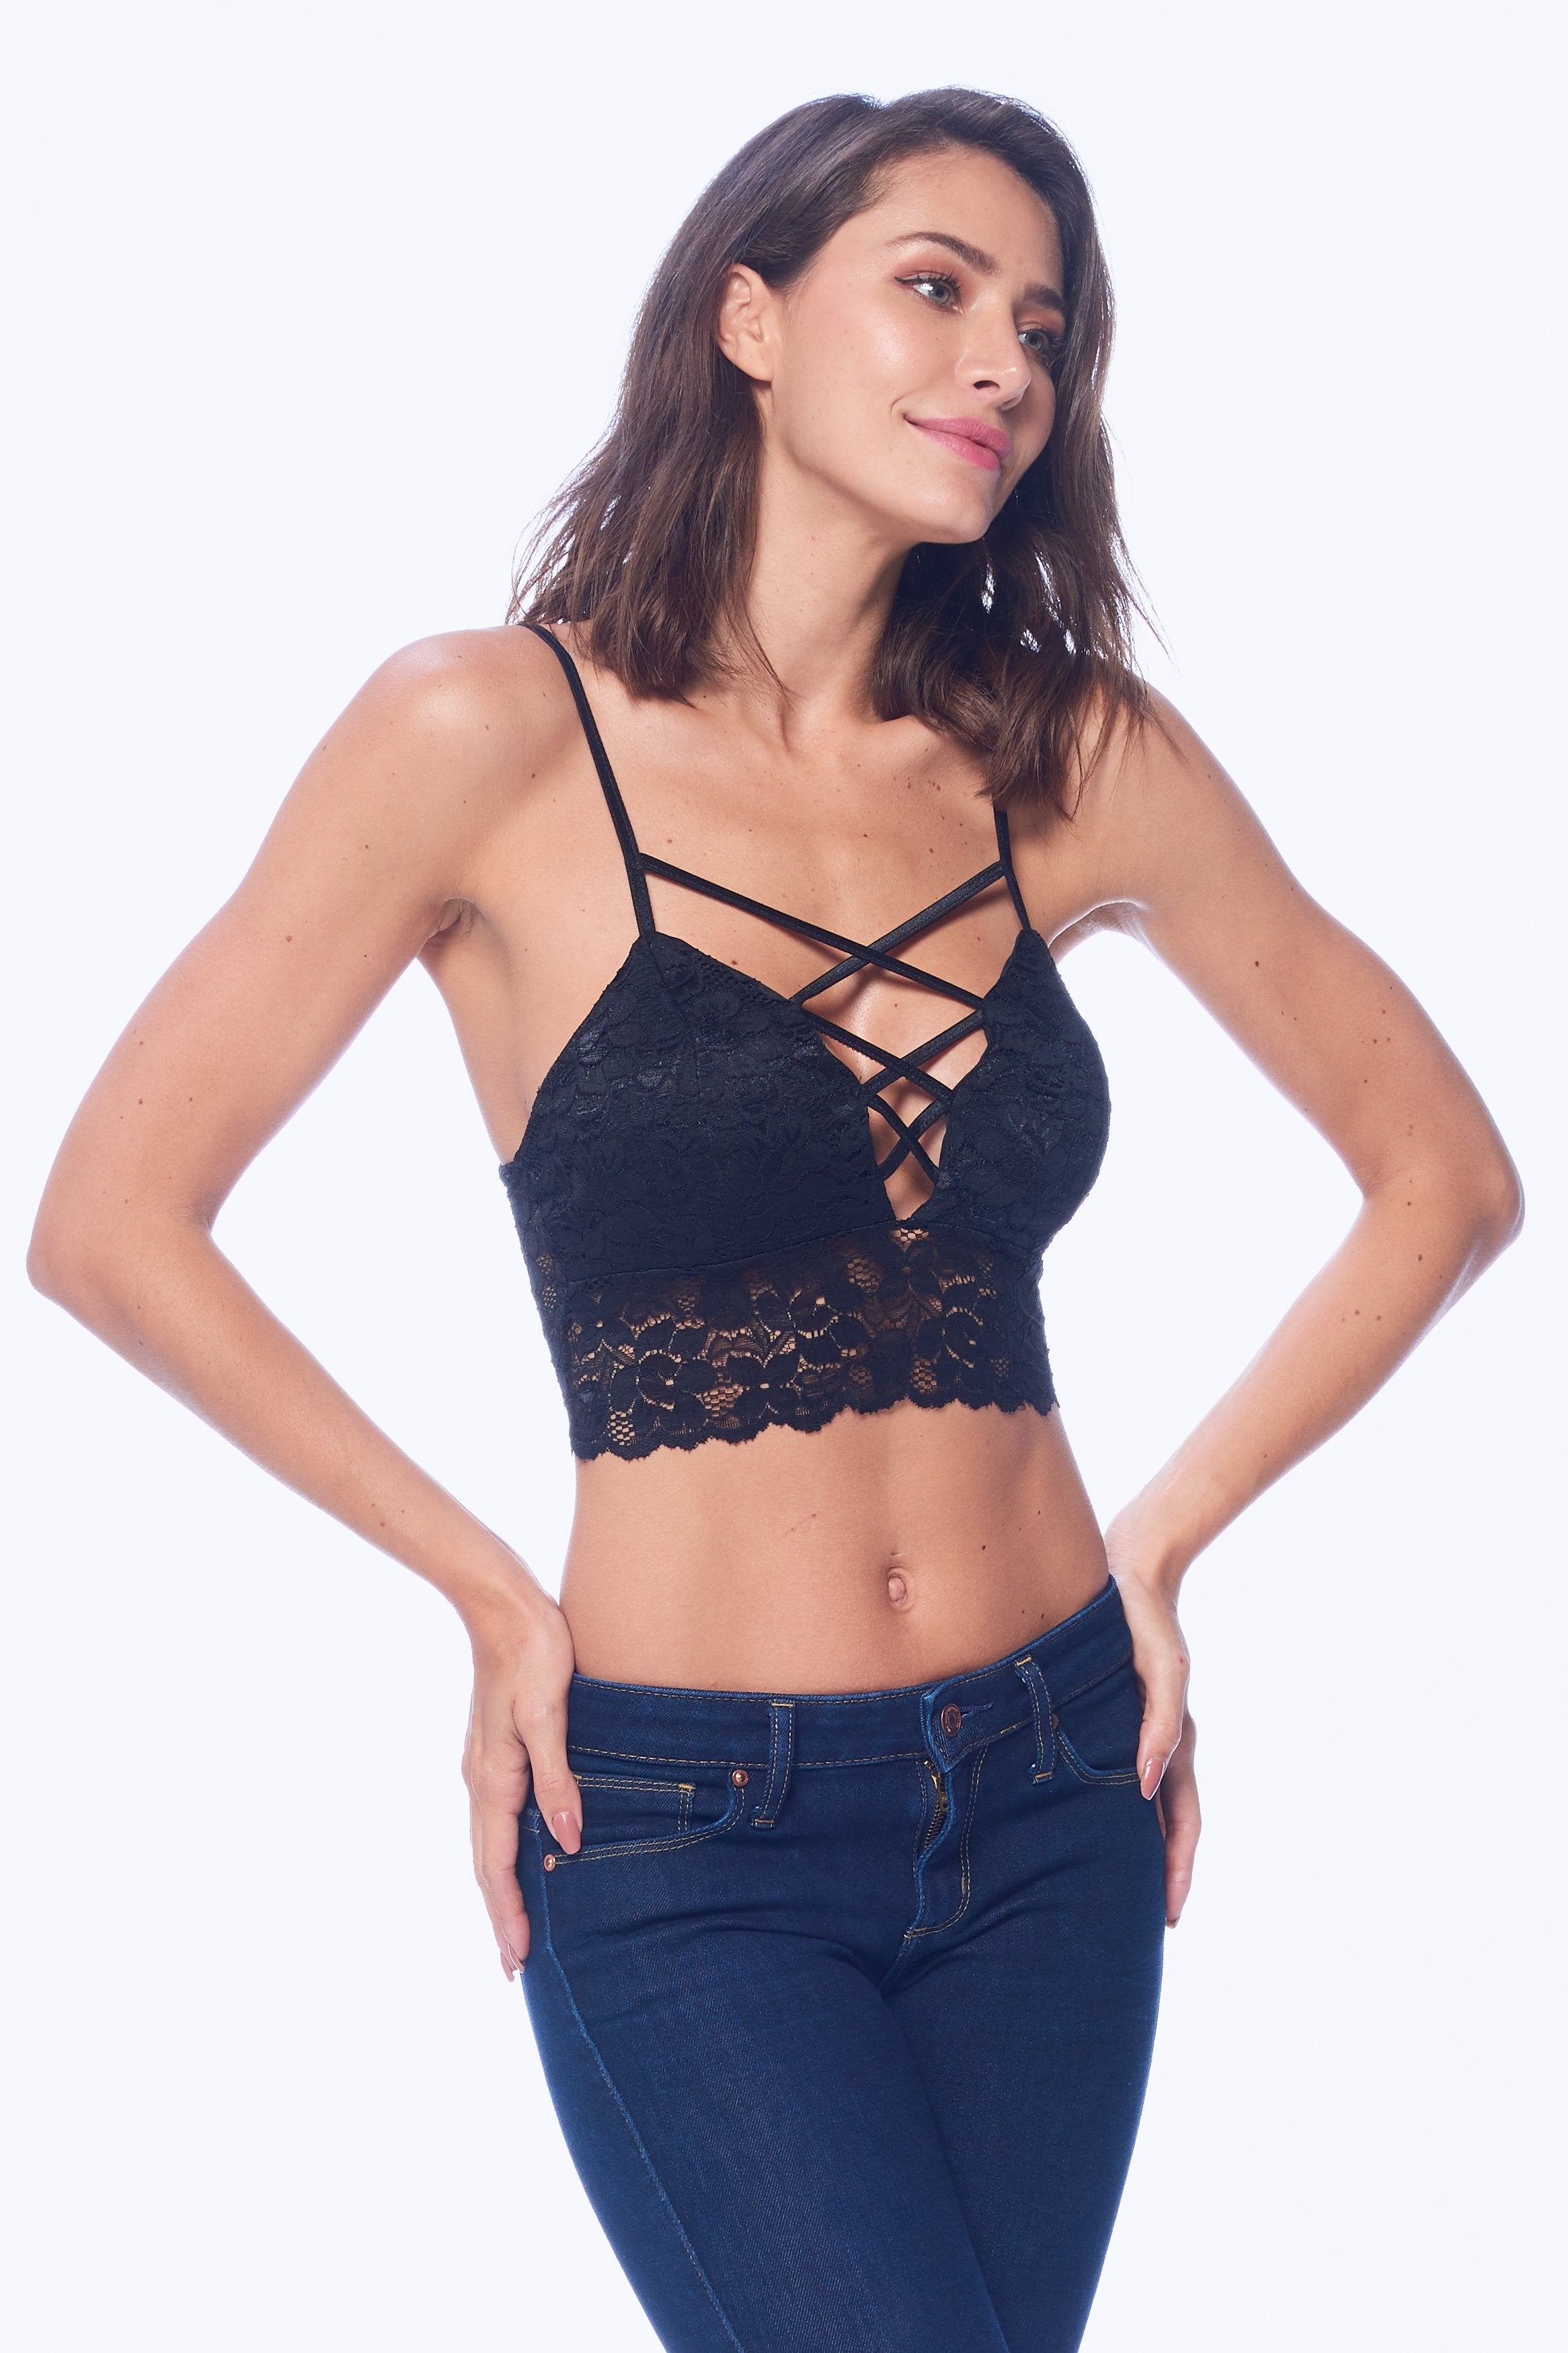 Khanomak Women's Lace Padded Bra lace-up Cutout strappy Style Crop Top